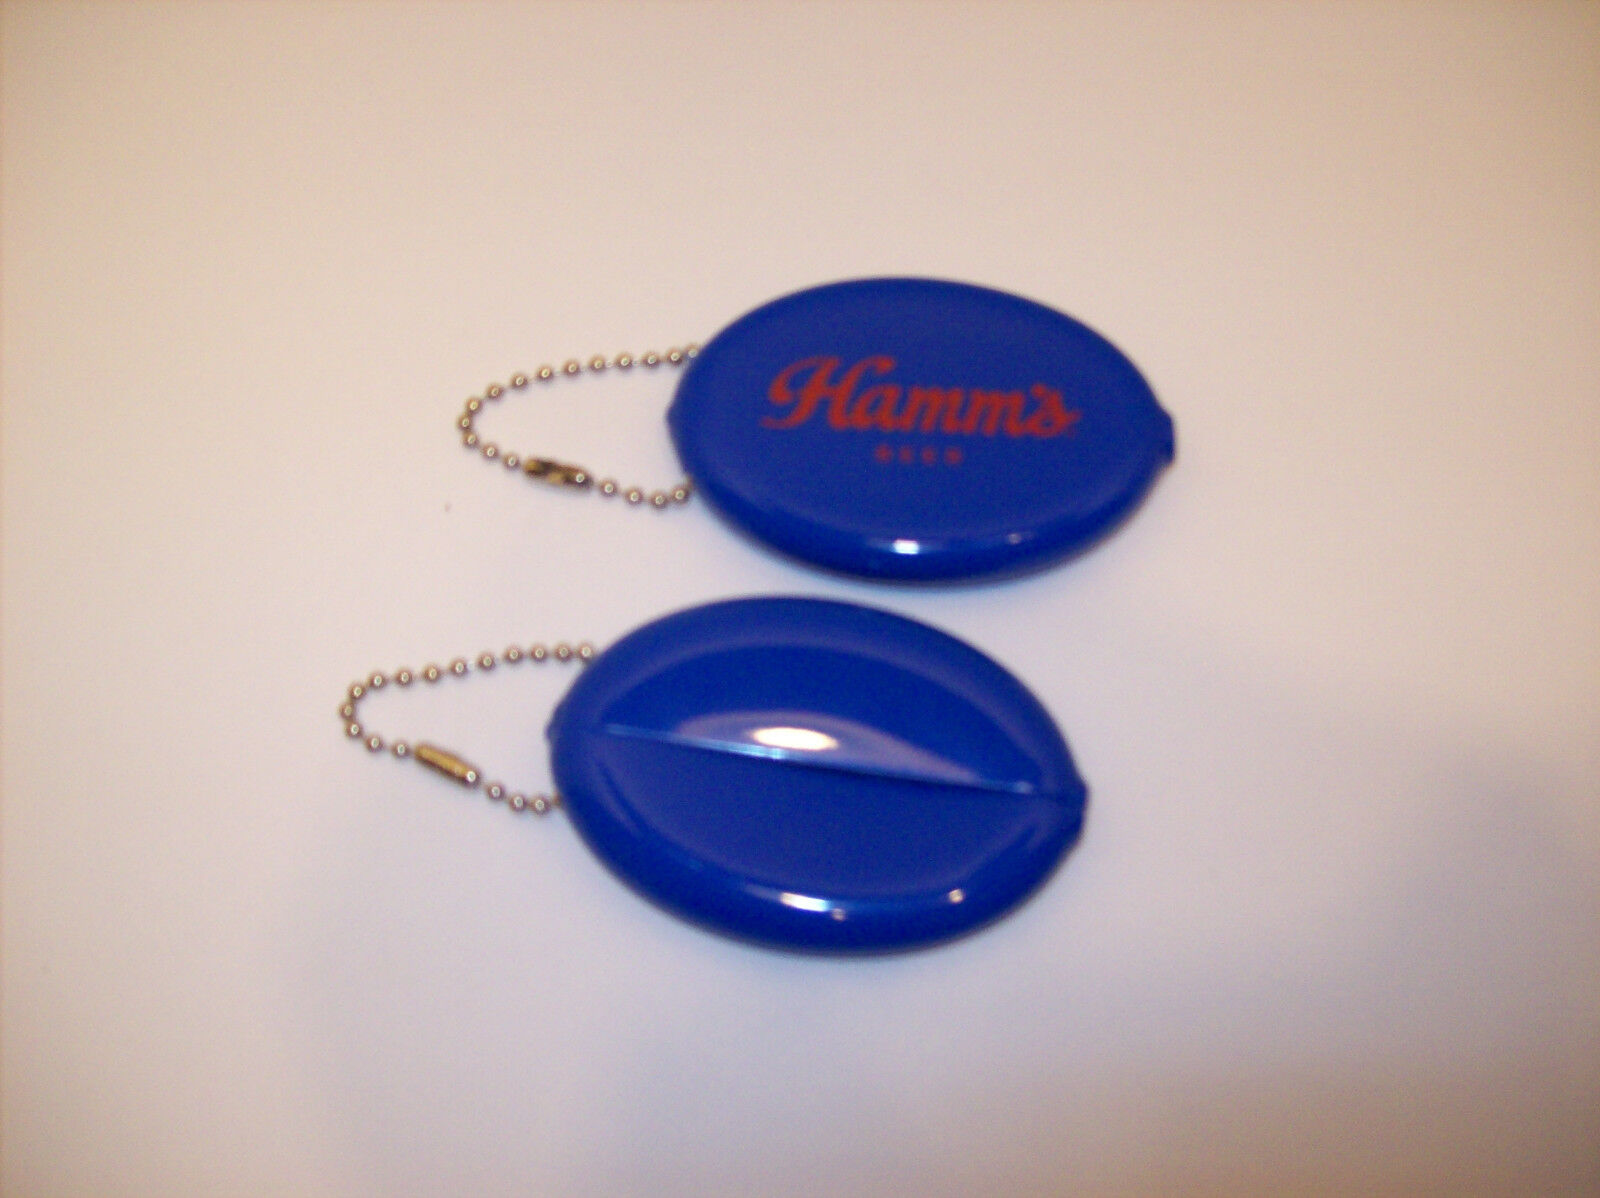 2 New Blue Rubber Squeeze Coin Holder Money Change Purse Oval Hamms Beer